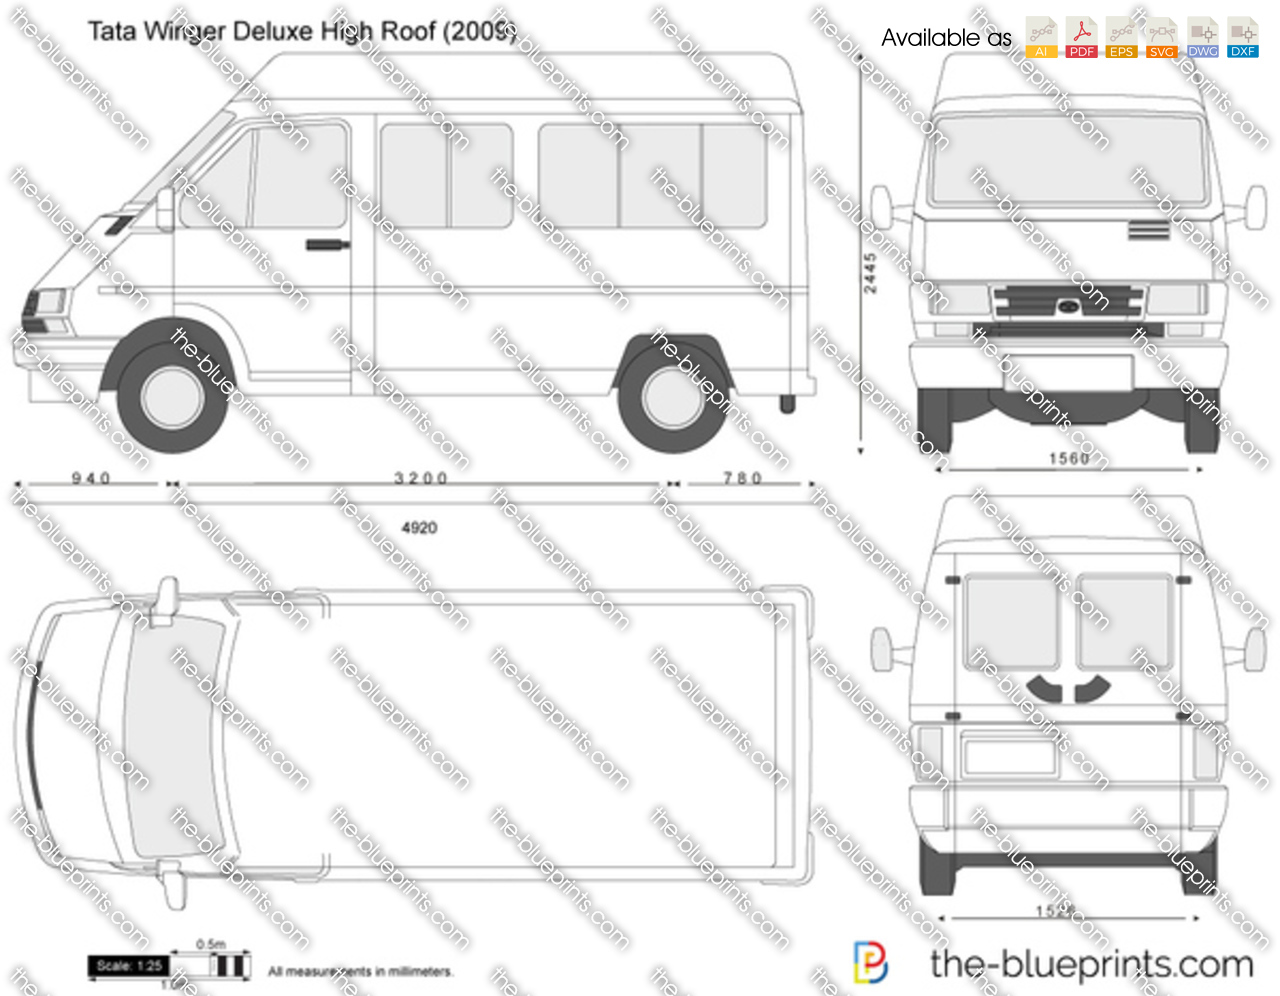 tata winger deluxe high roof vector drawing